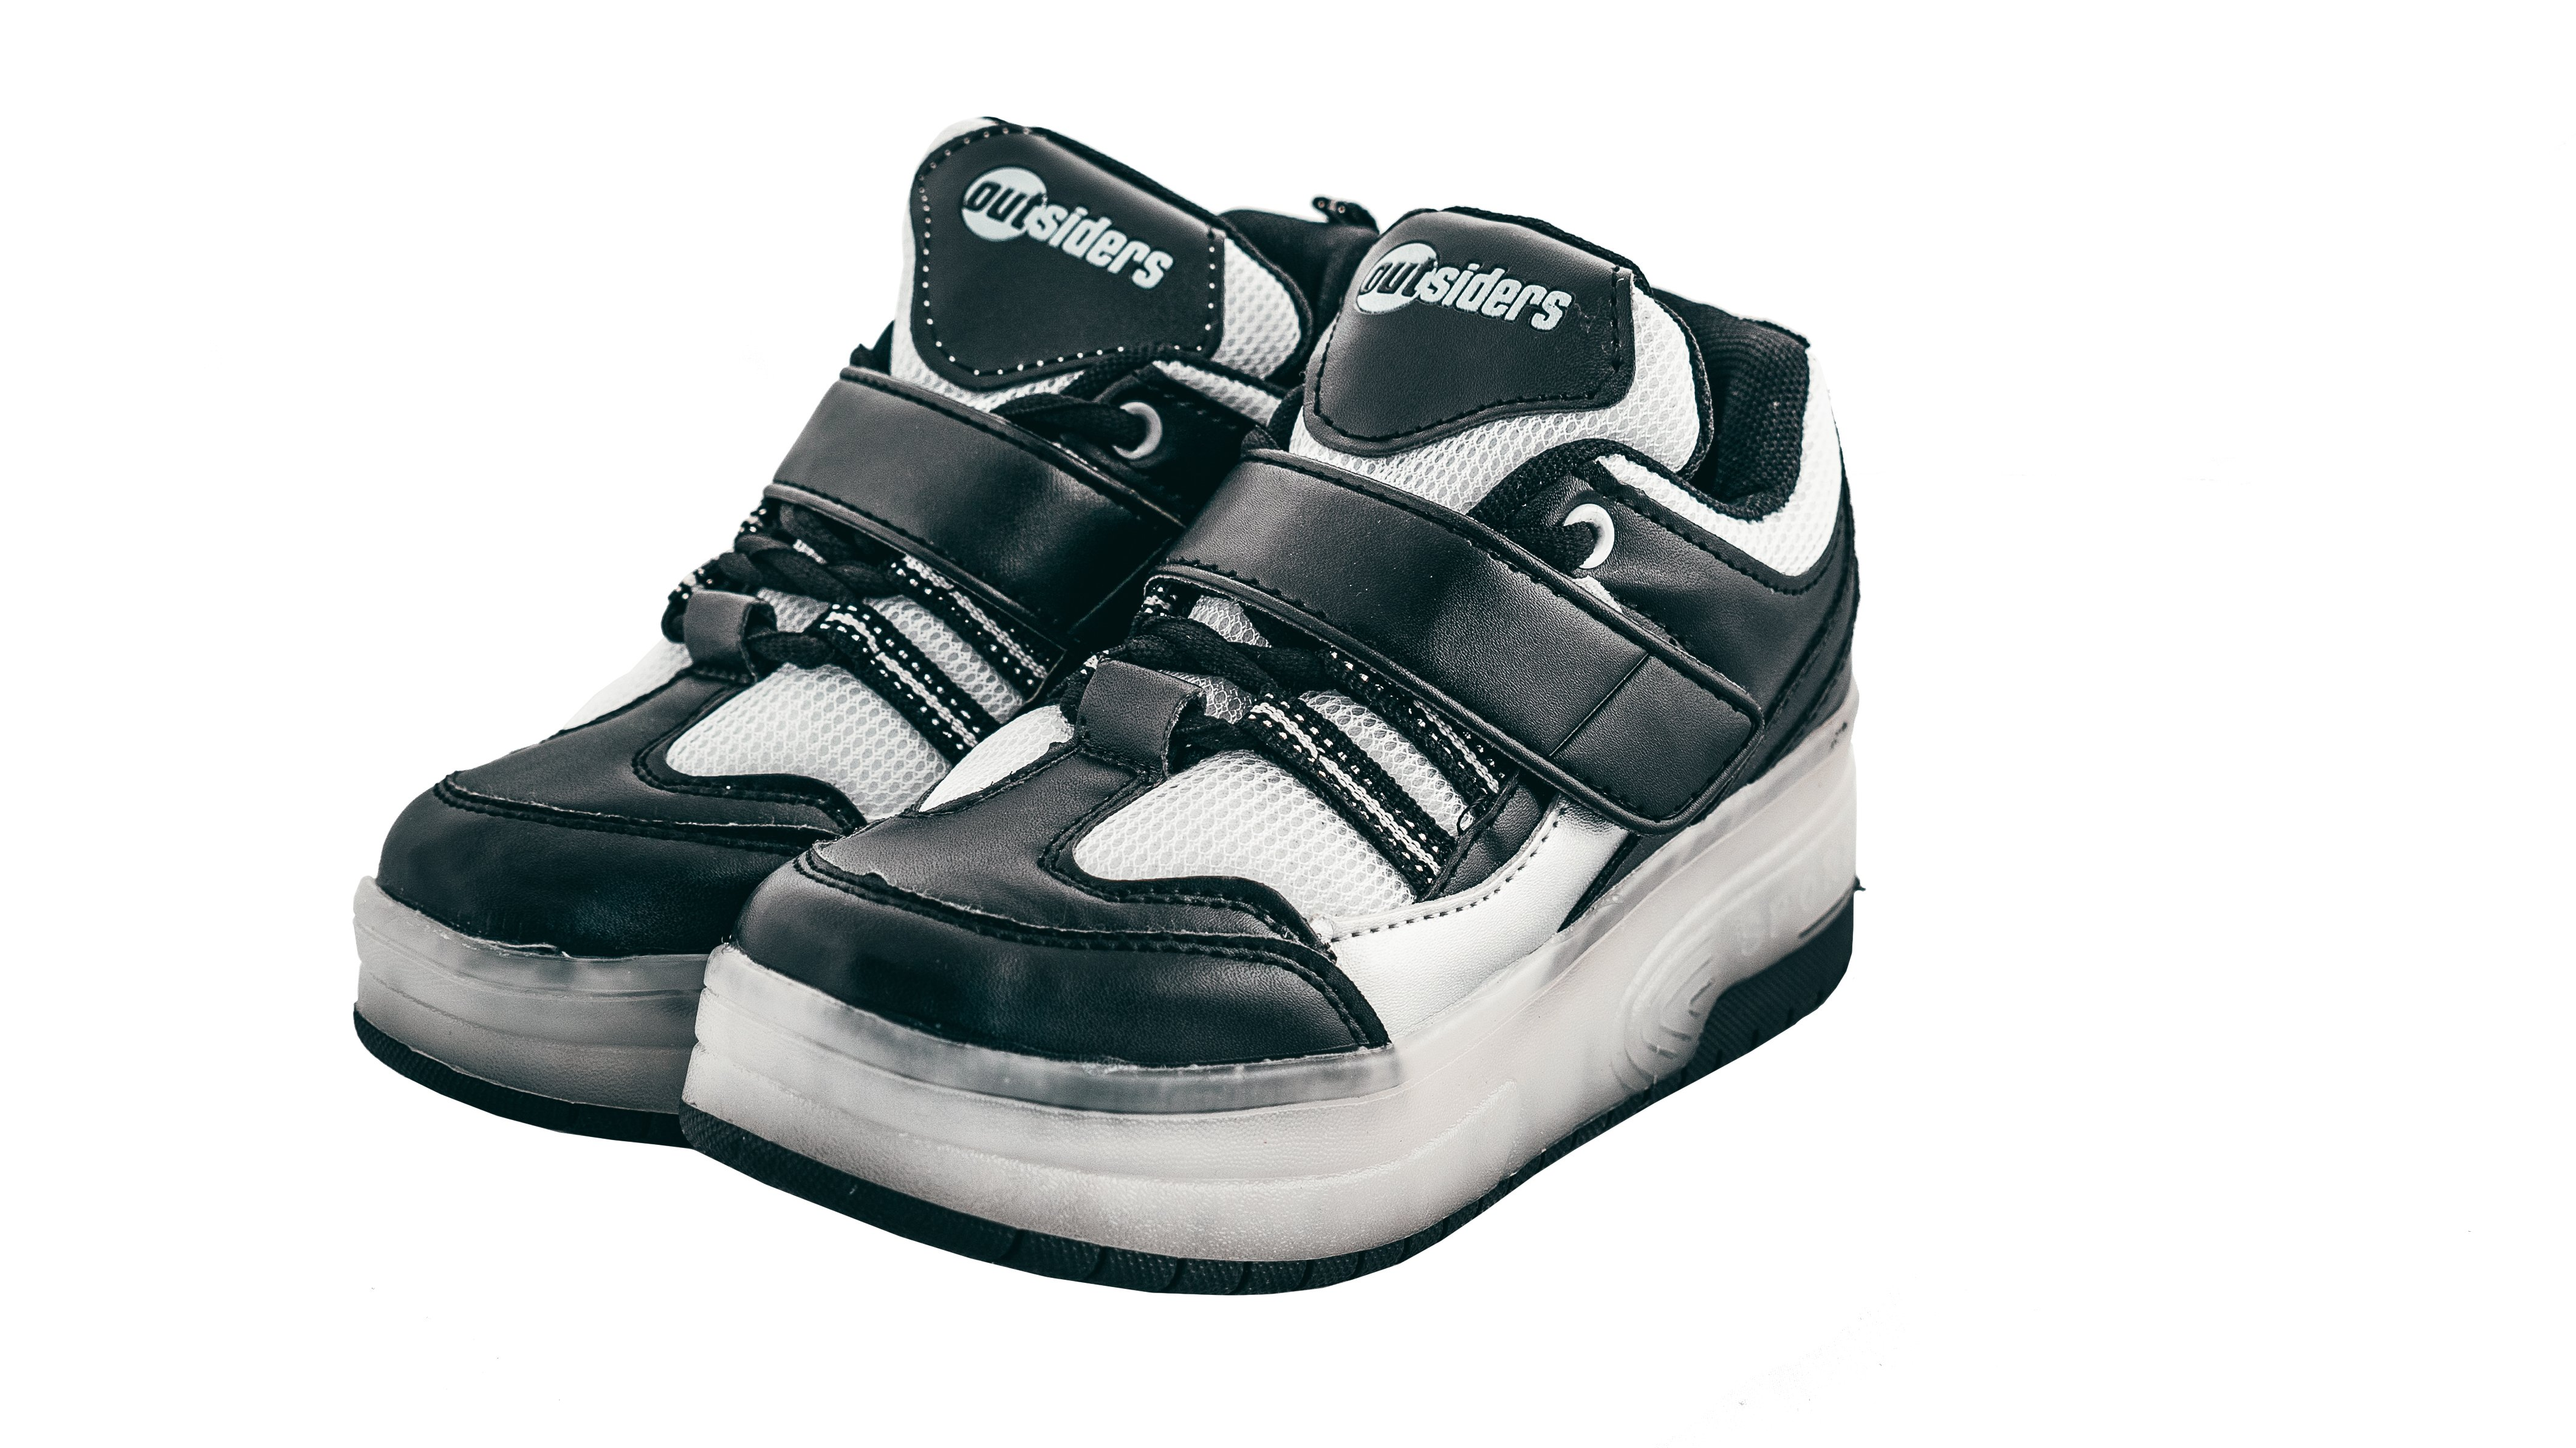 Outsiders - Roller Shoes with LED - Black/Silver (size: 36)